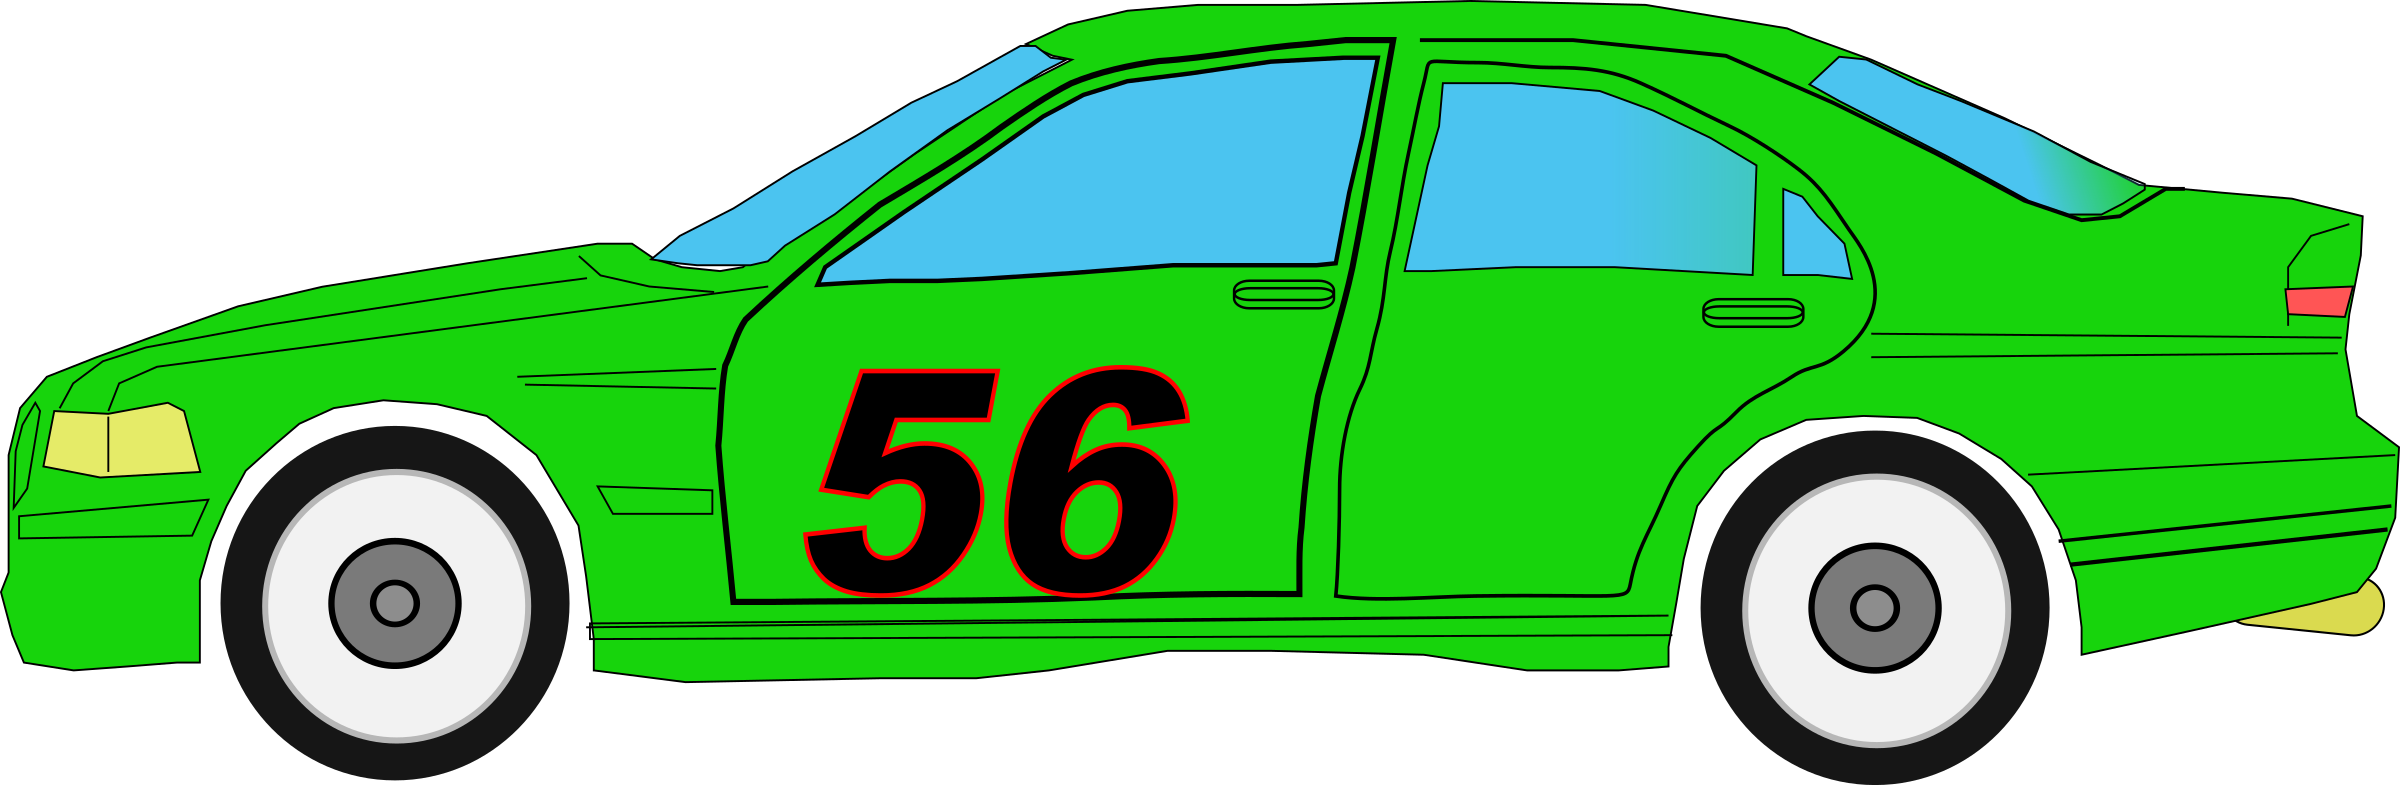 Race Car Driver Clipart at GetDrawings